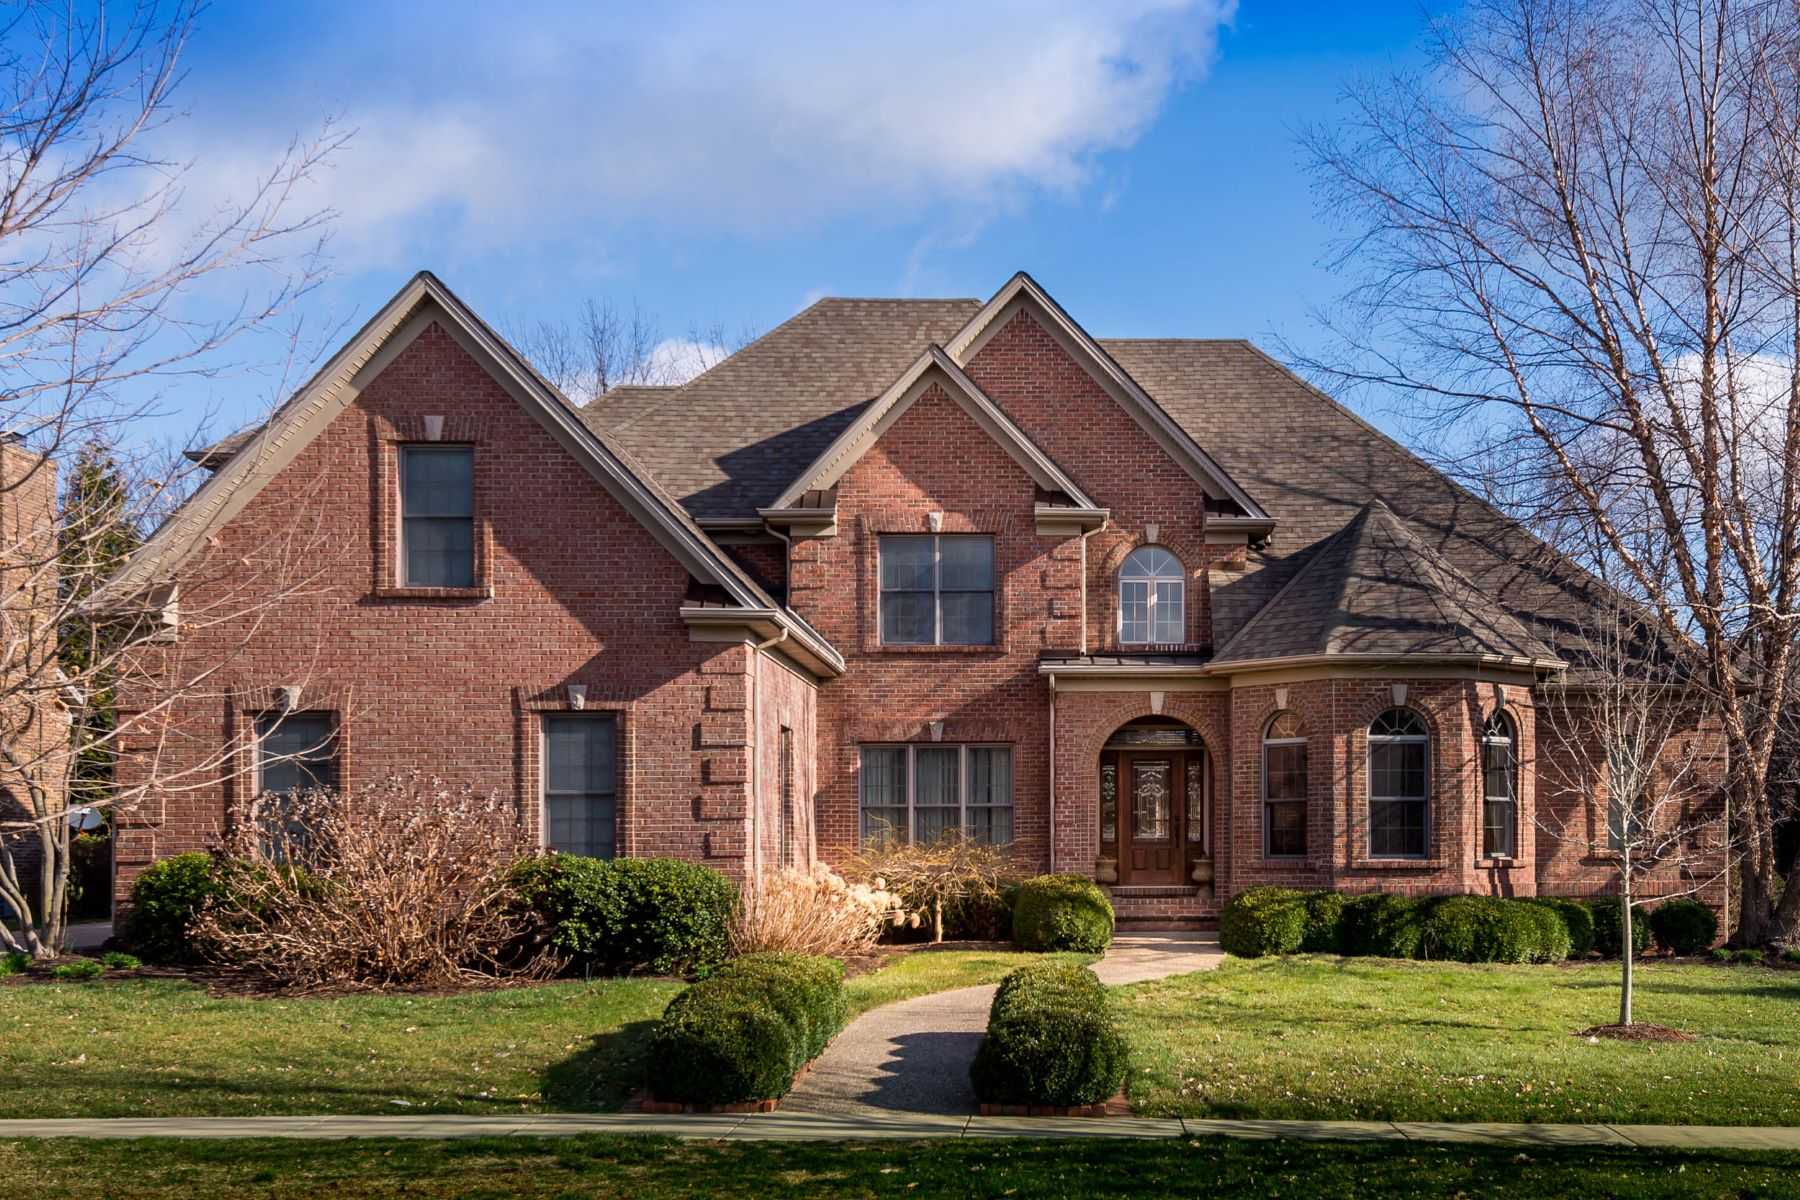 Casa Unifamiliar por un Venta en 1309 Cordele Lane Lexington, Kentucky, 40513 Estados Unidos